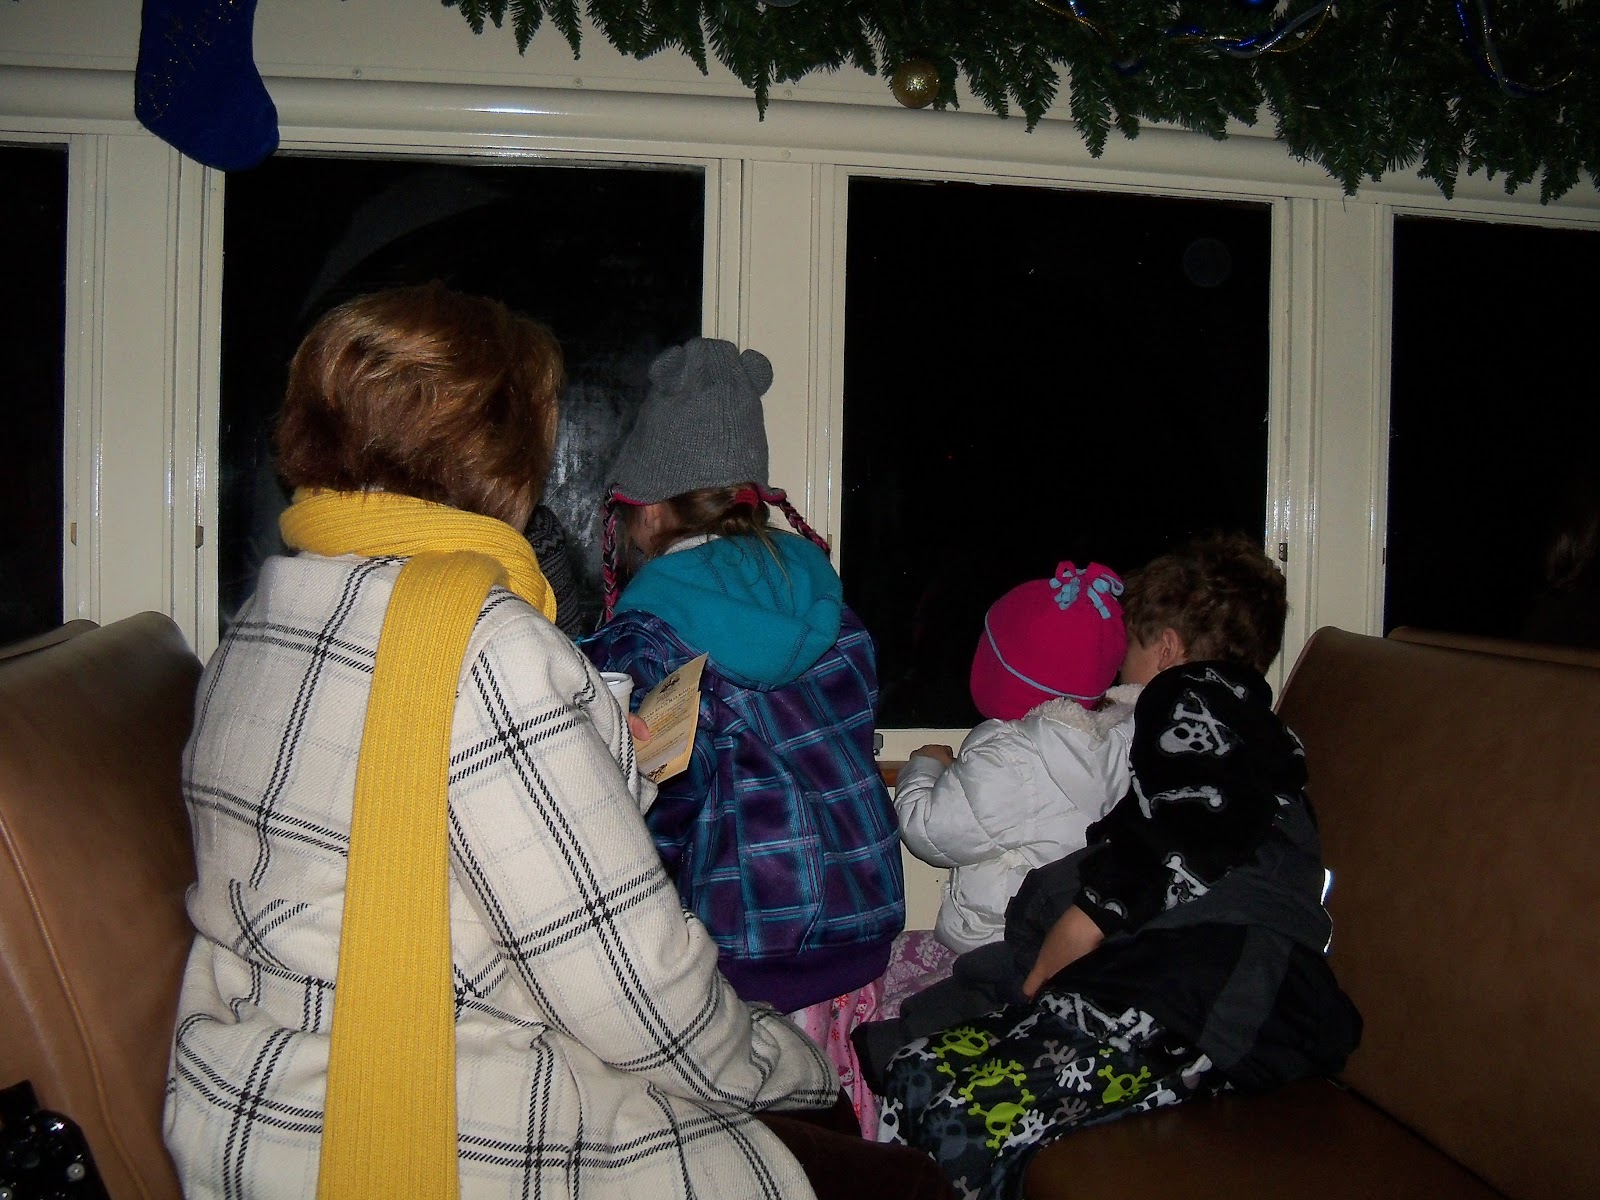 Polar Express Christmas Train 2011 - 115_0956.JPG